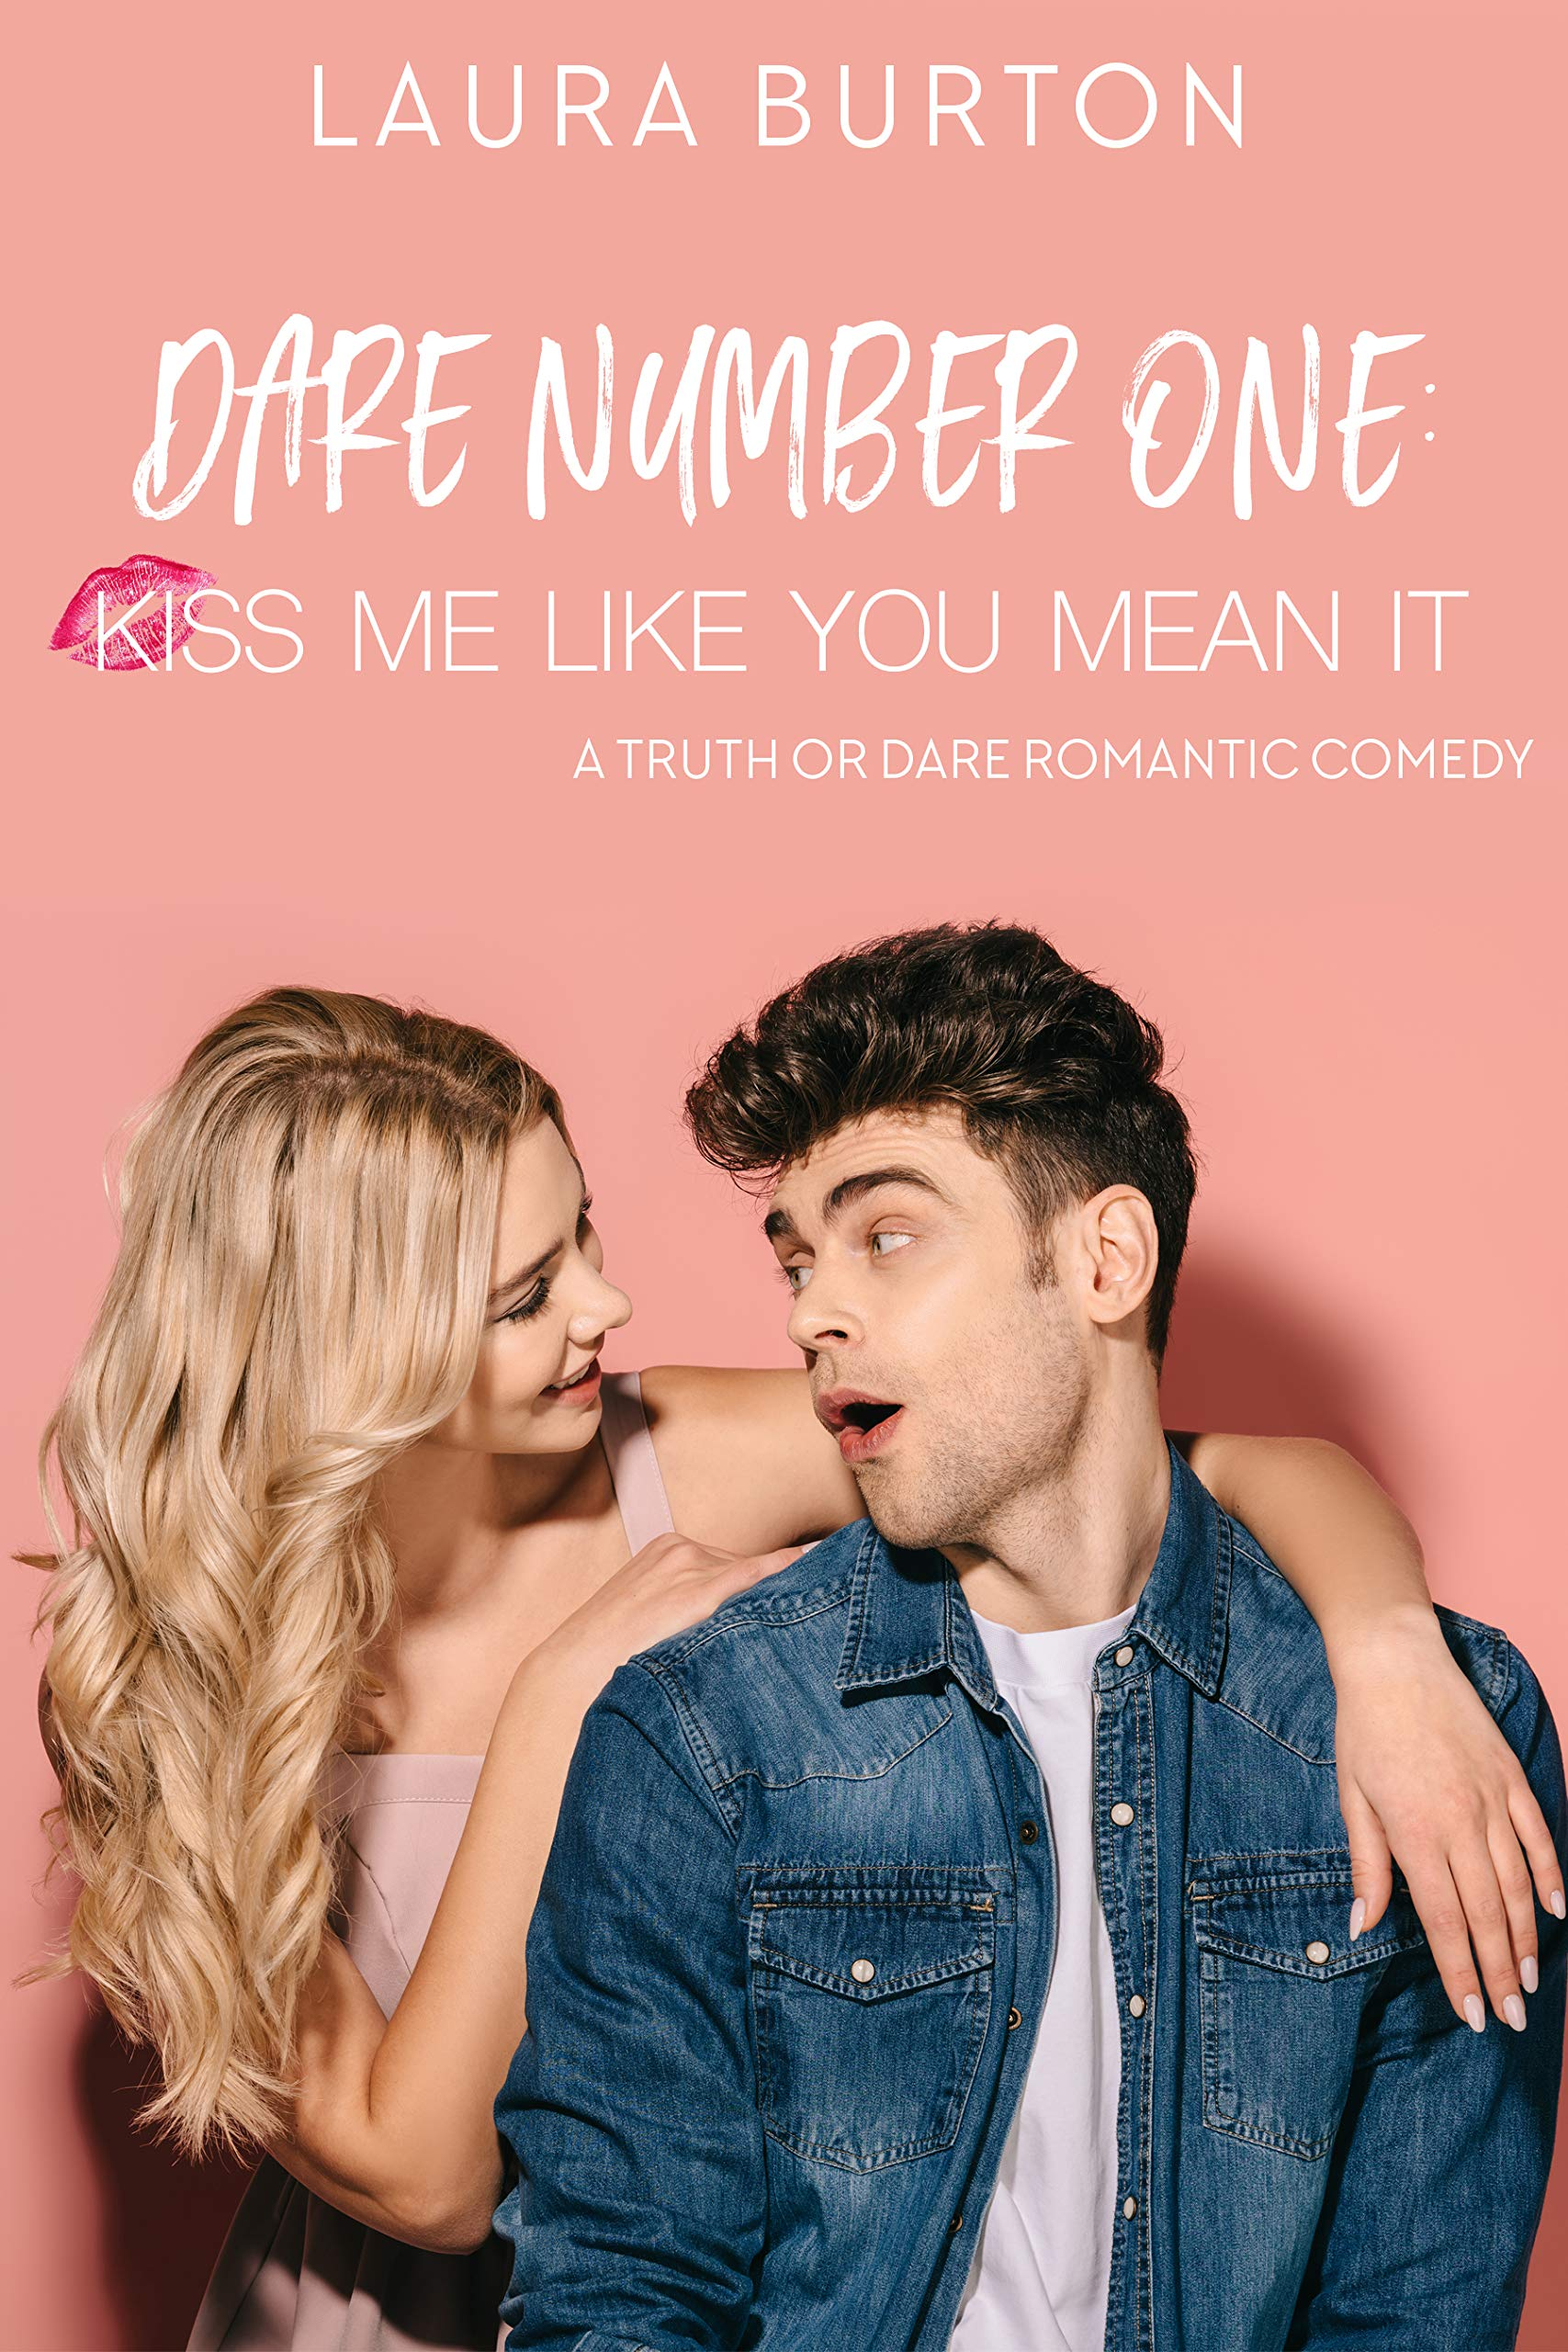 Dare Number One: Kiss Me Like You Mean It: A Truth or Dare Romantic Comedy